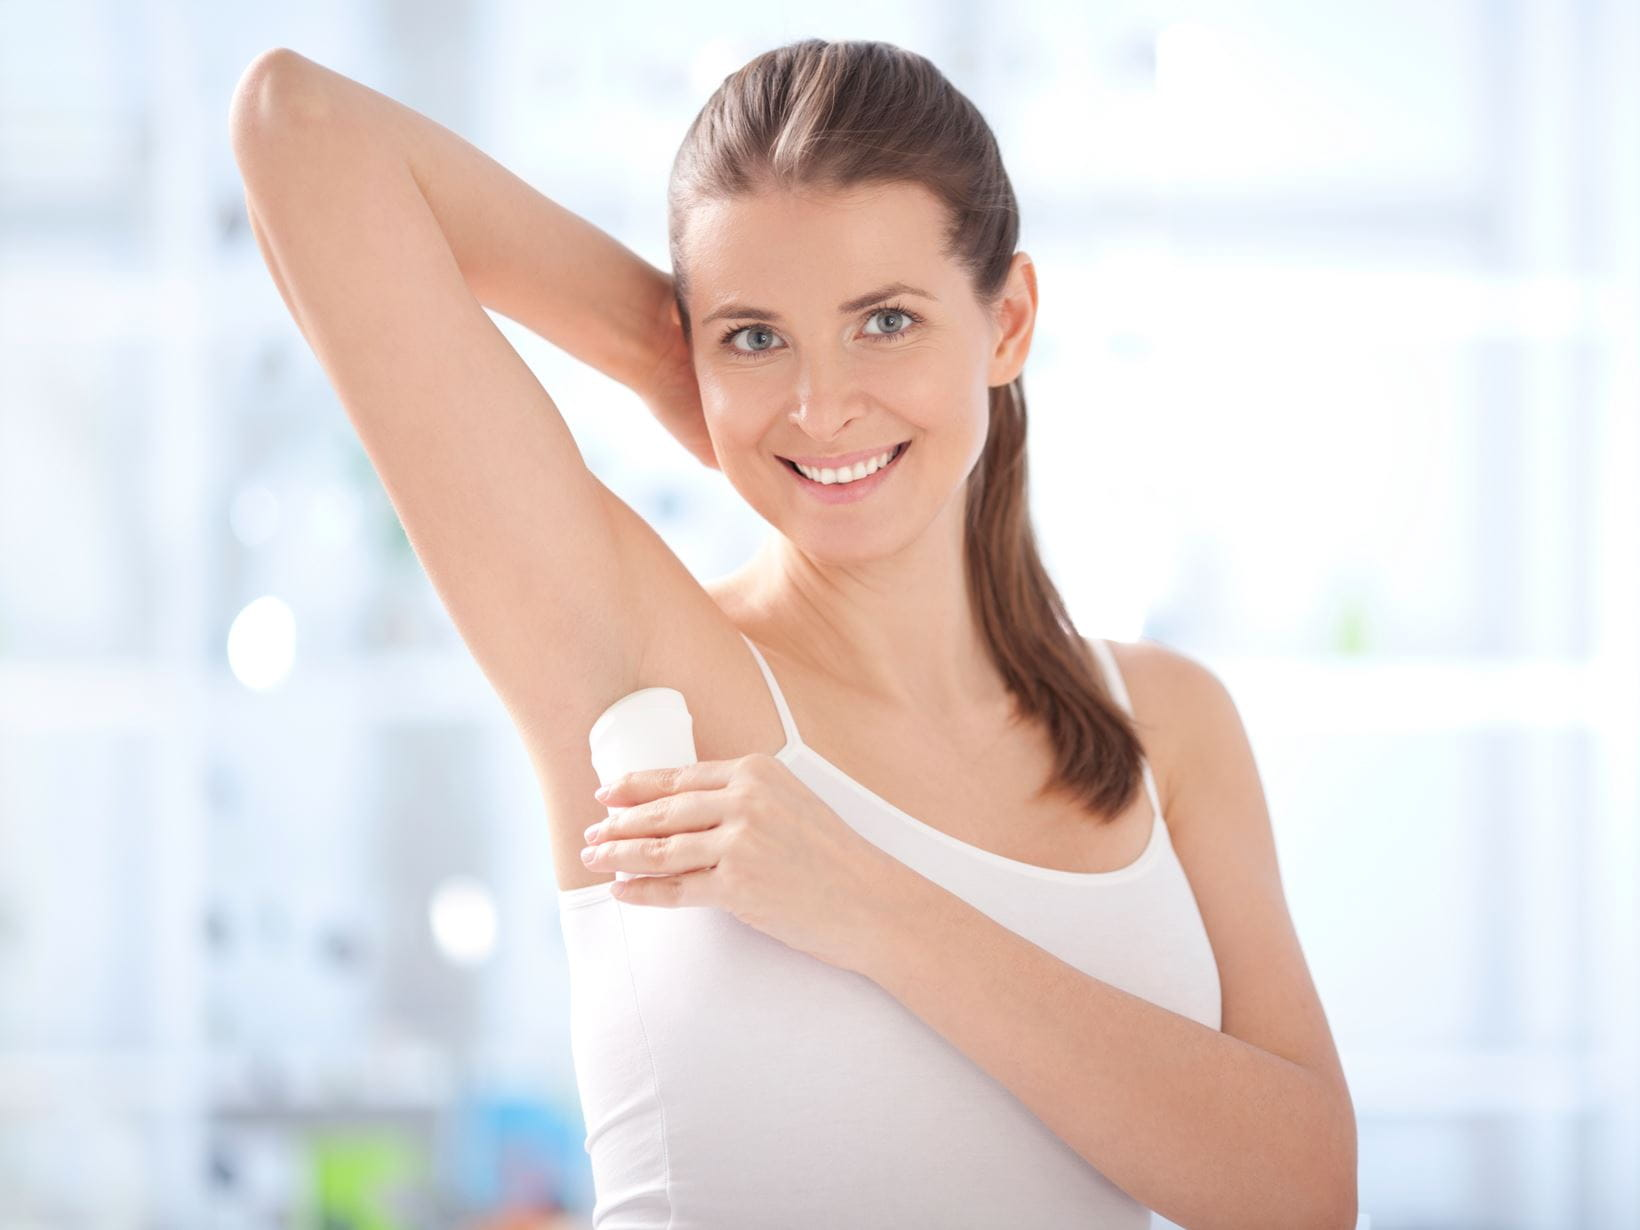 woman-in-bathroom-with-deodorant